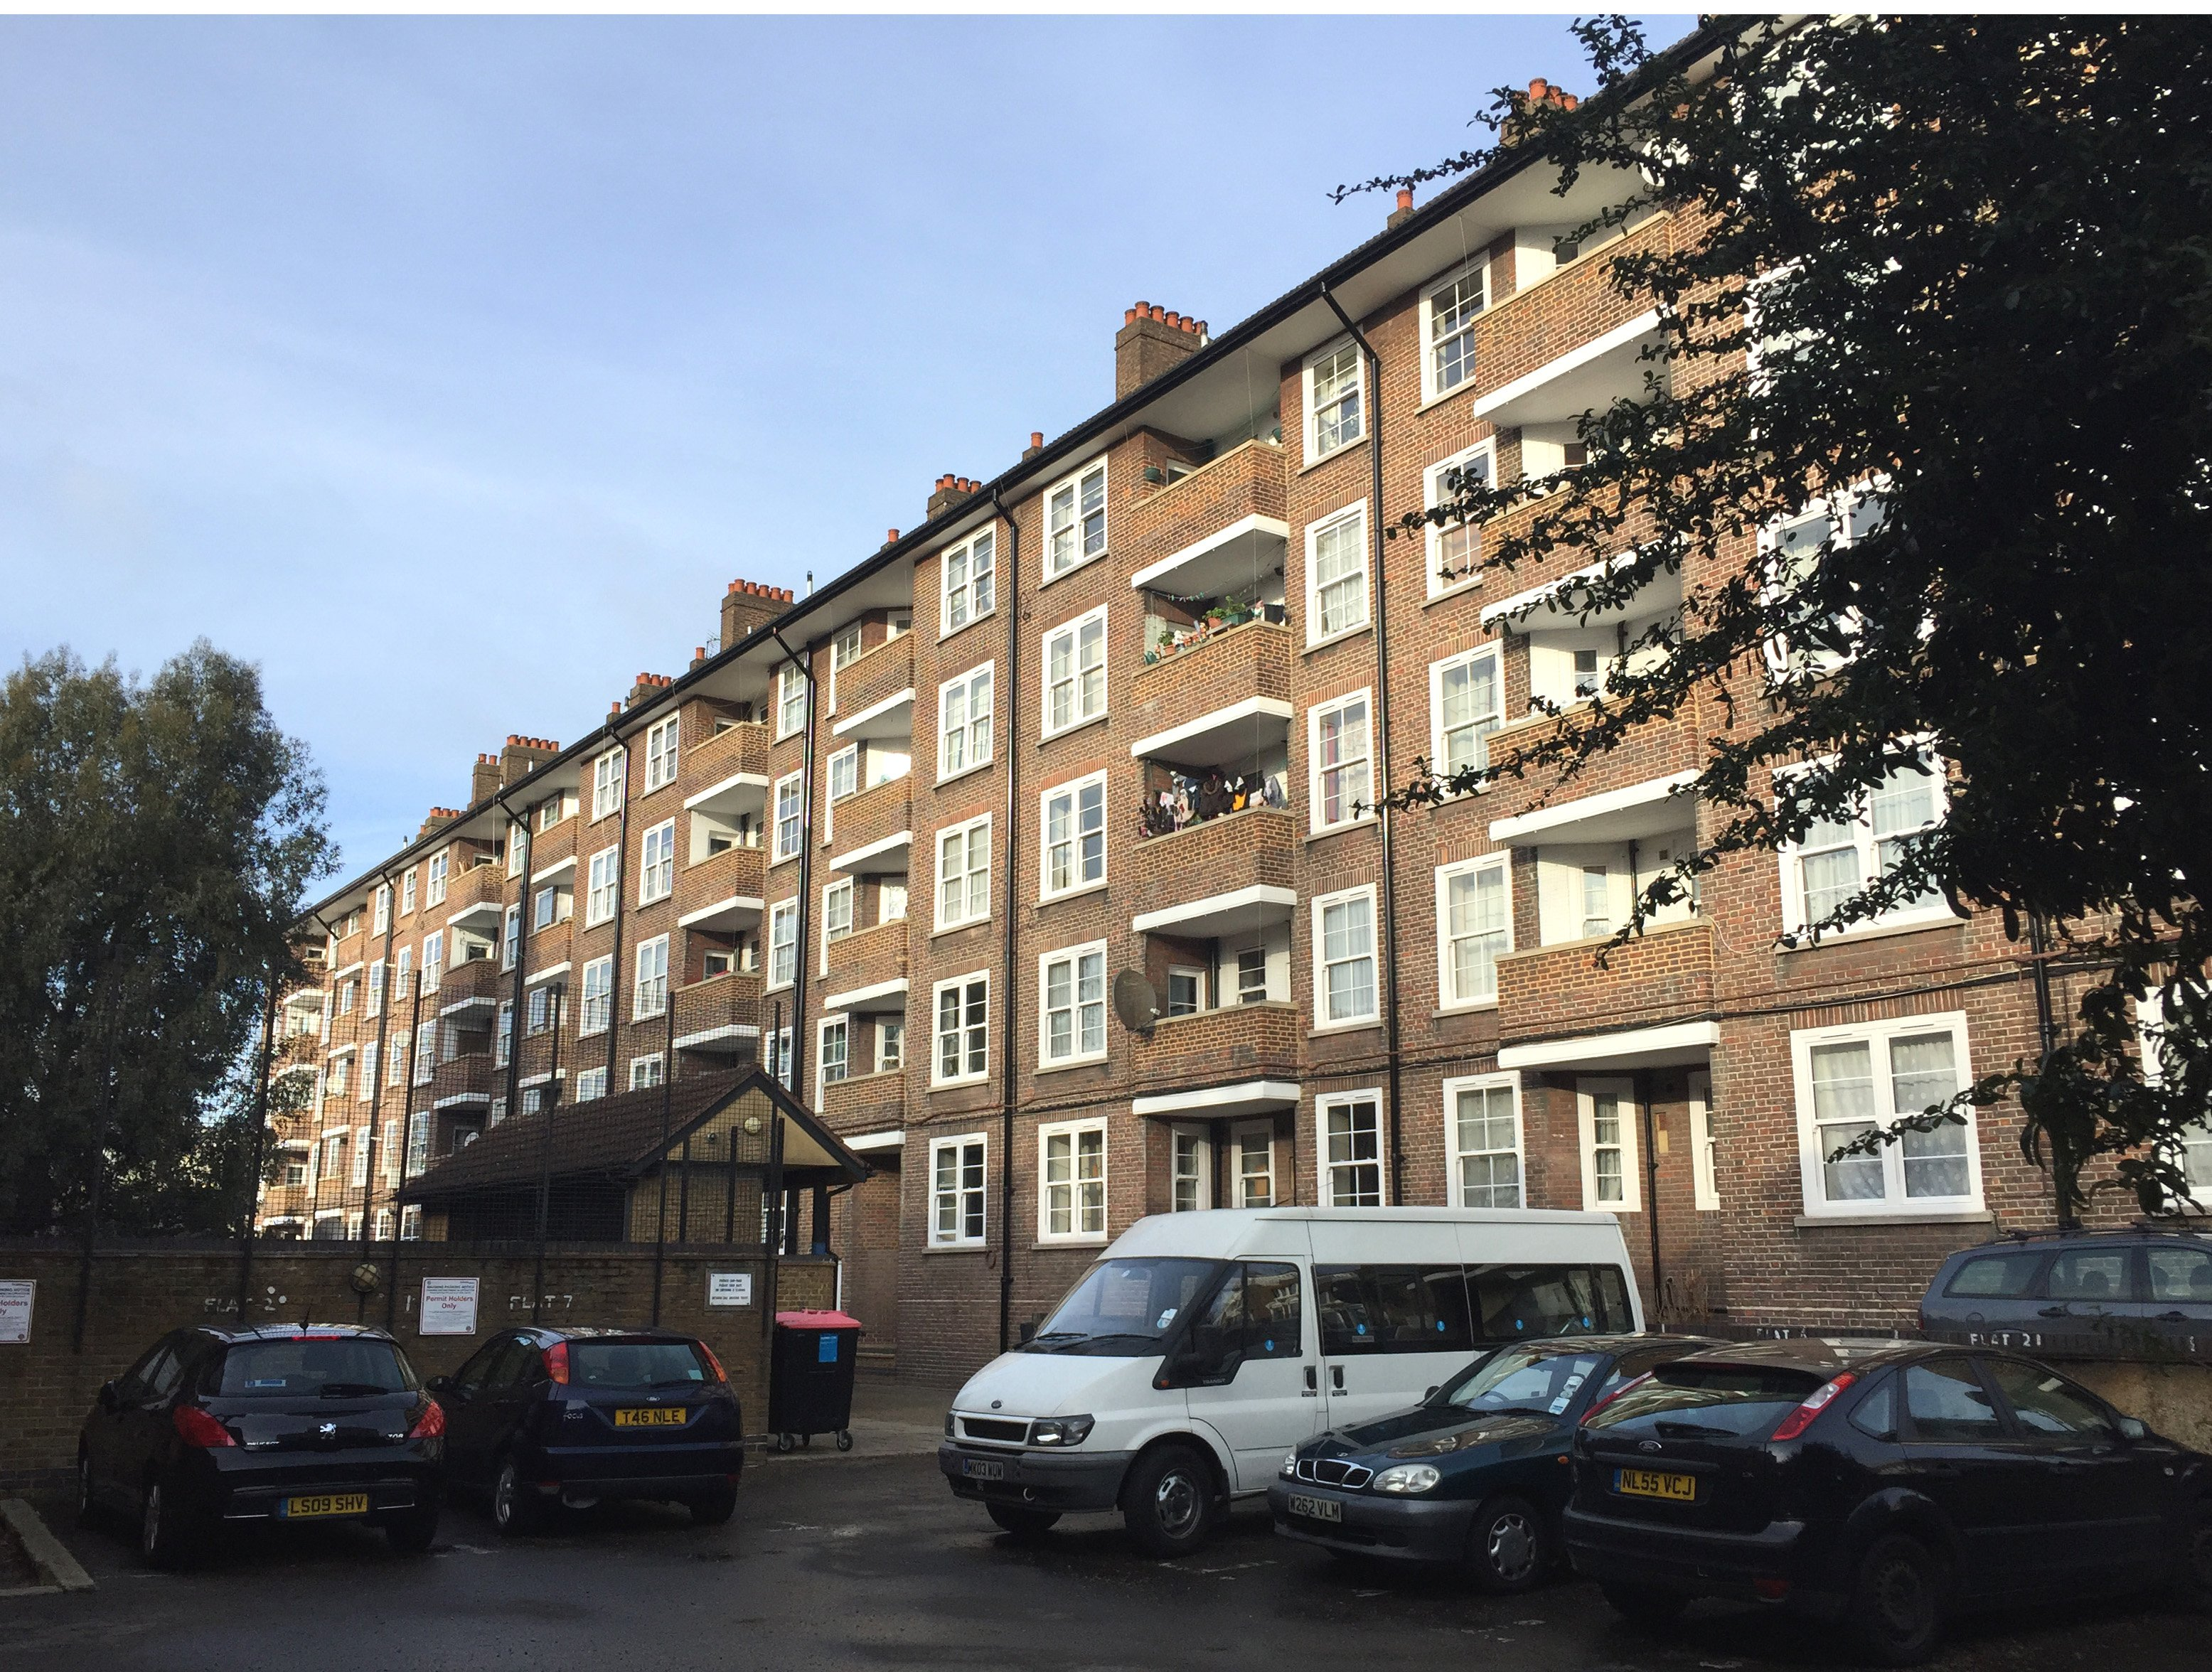 Sovereign supplies 369 VEKA Vertical Sliders for Notting Hill social housing renovation